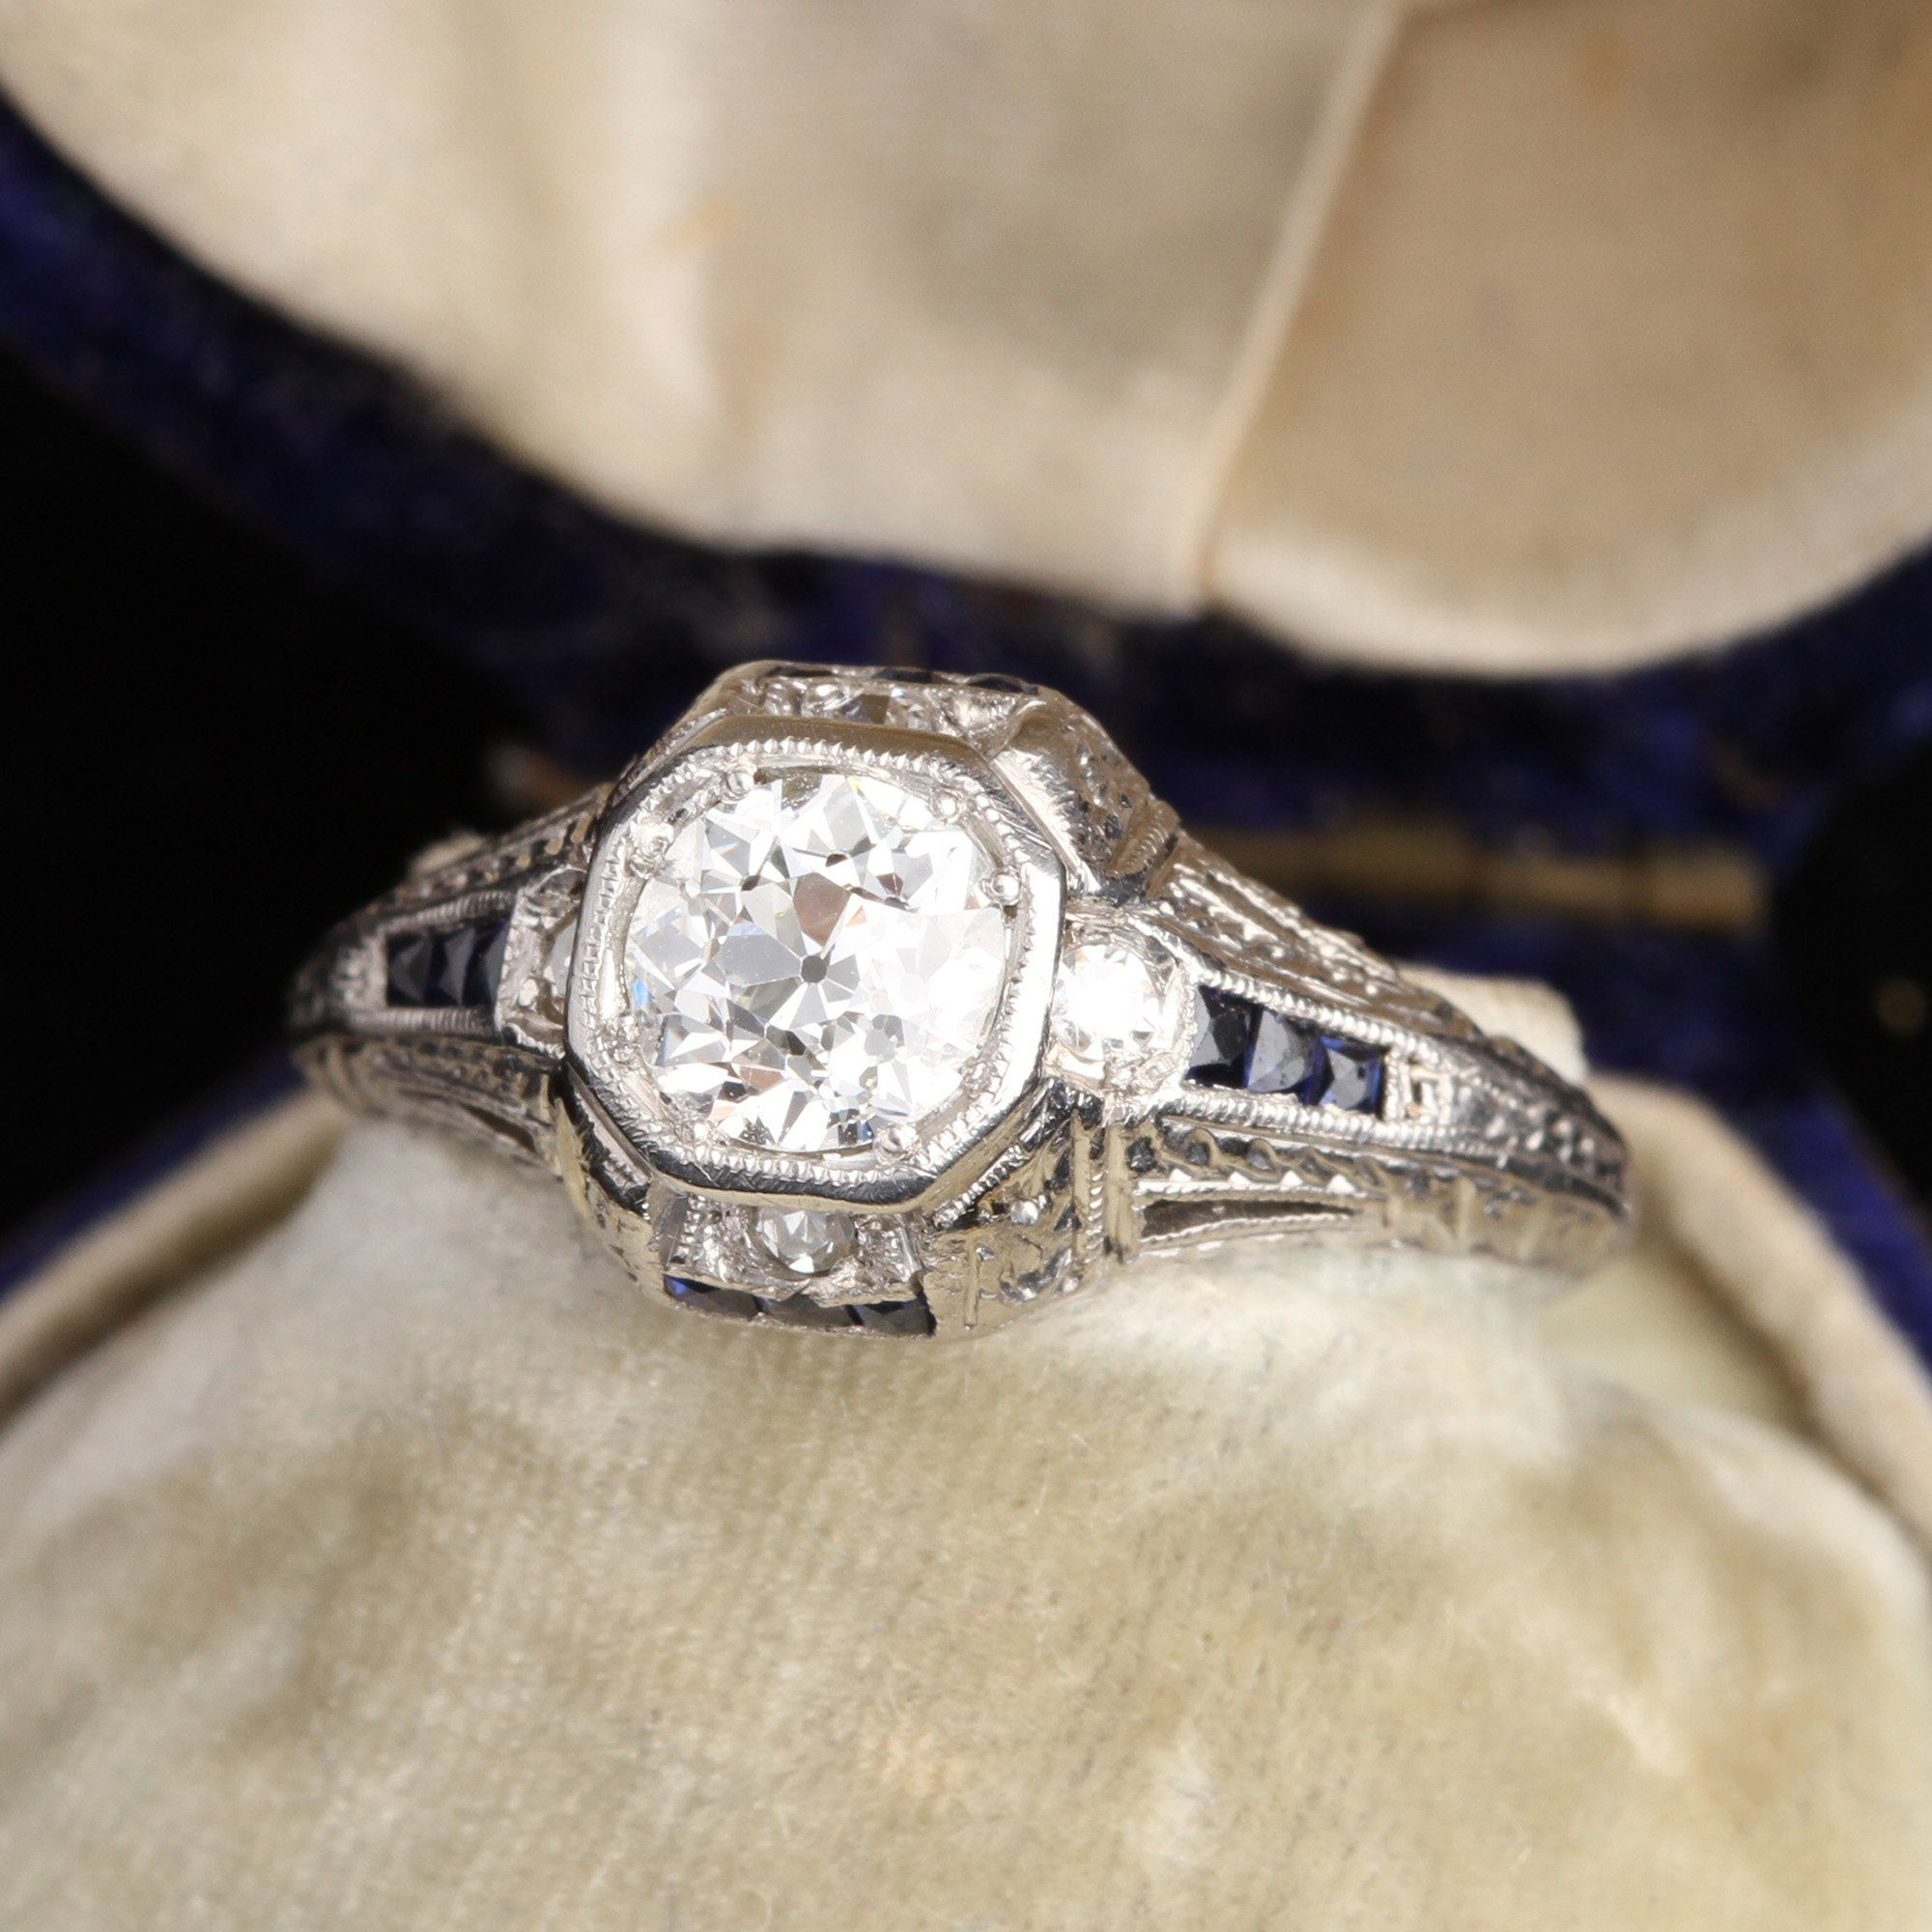 Octagonal Deco Diamond Engagement Ring with Sapphire and Diamond Accents